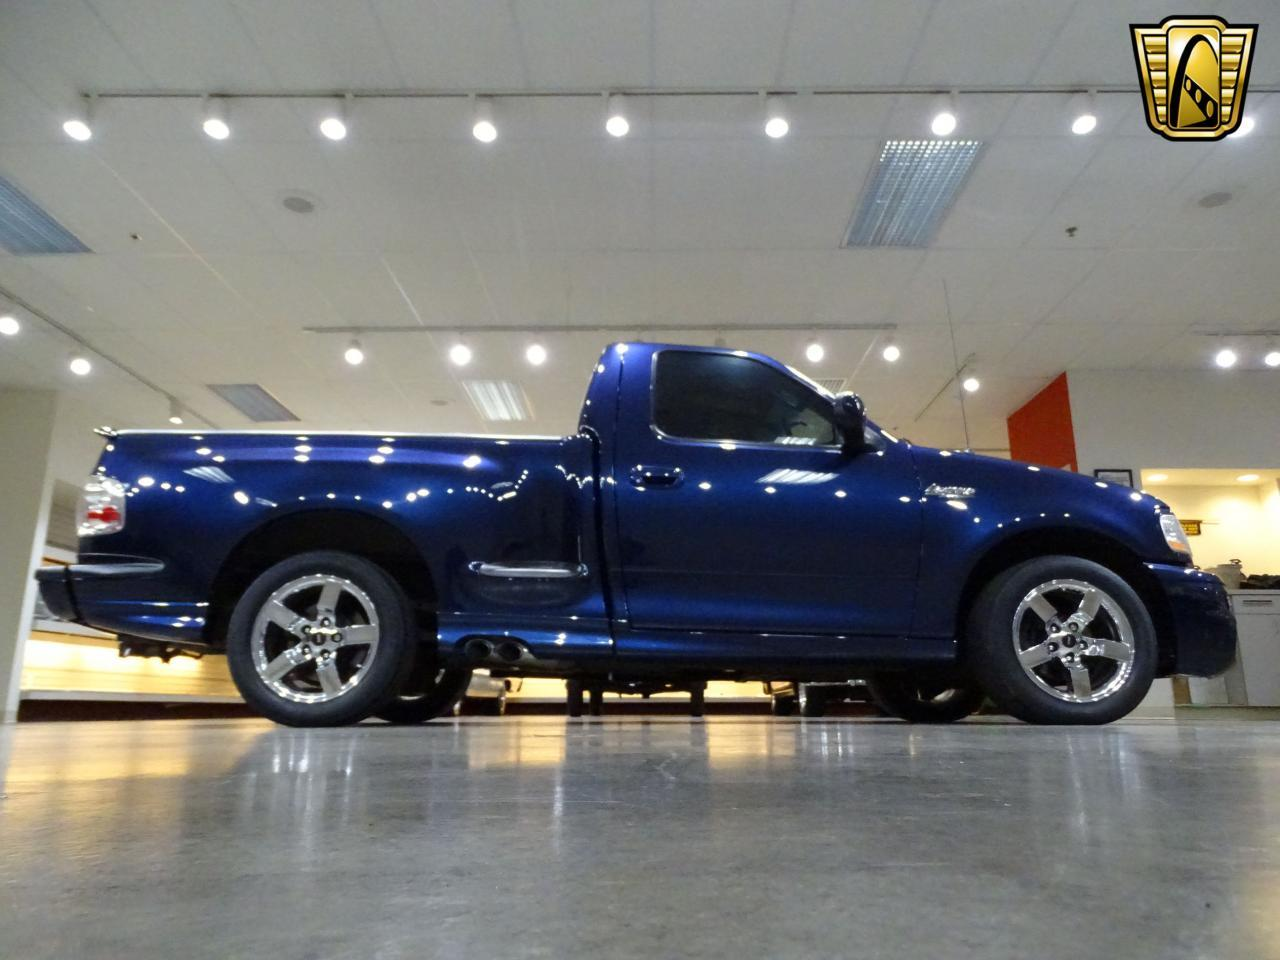 Large Picture of '02 Ford F150 located in O'Fallon Illinois - $20,595.00 Offered by Gateway Classic Cars - St. Louis - MOAG